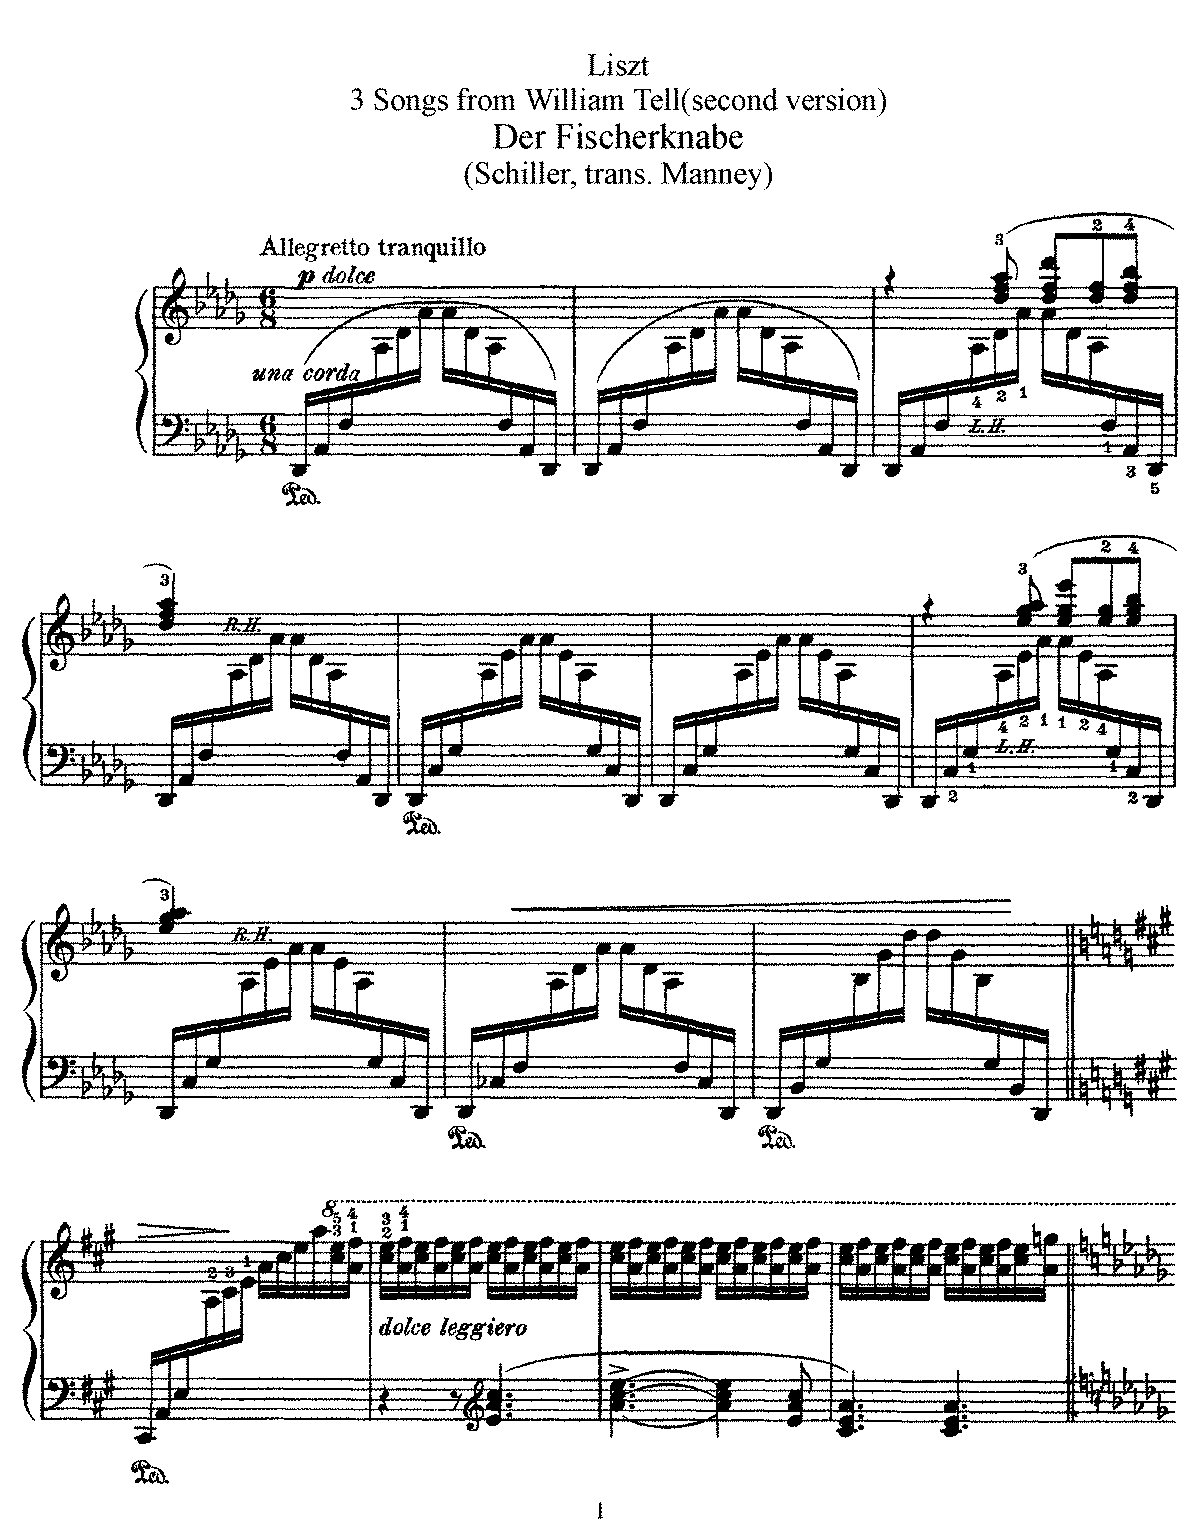 Liszt - S292ii Songs from Schiller's Wilhelm Tell 2nd version.pdf